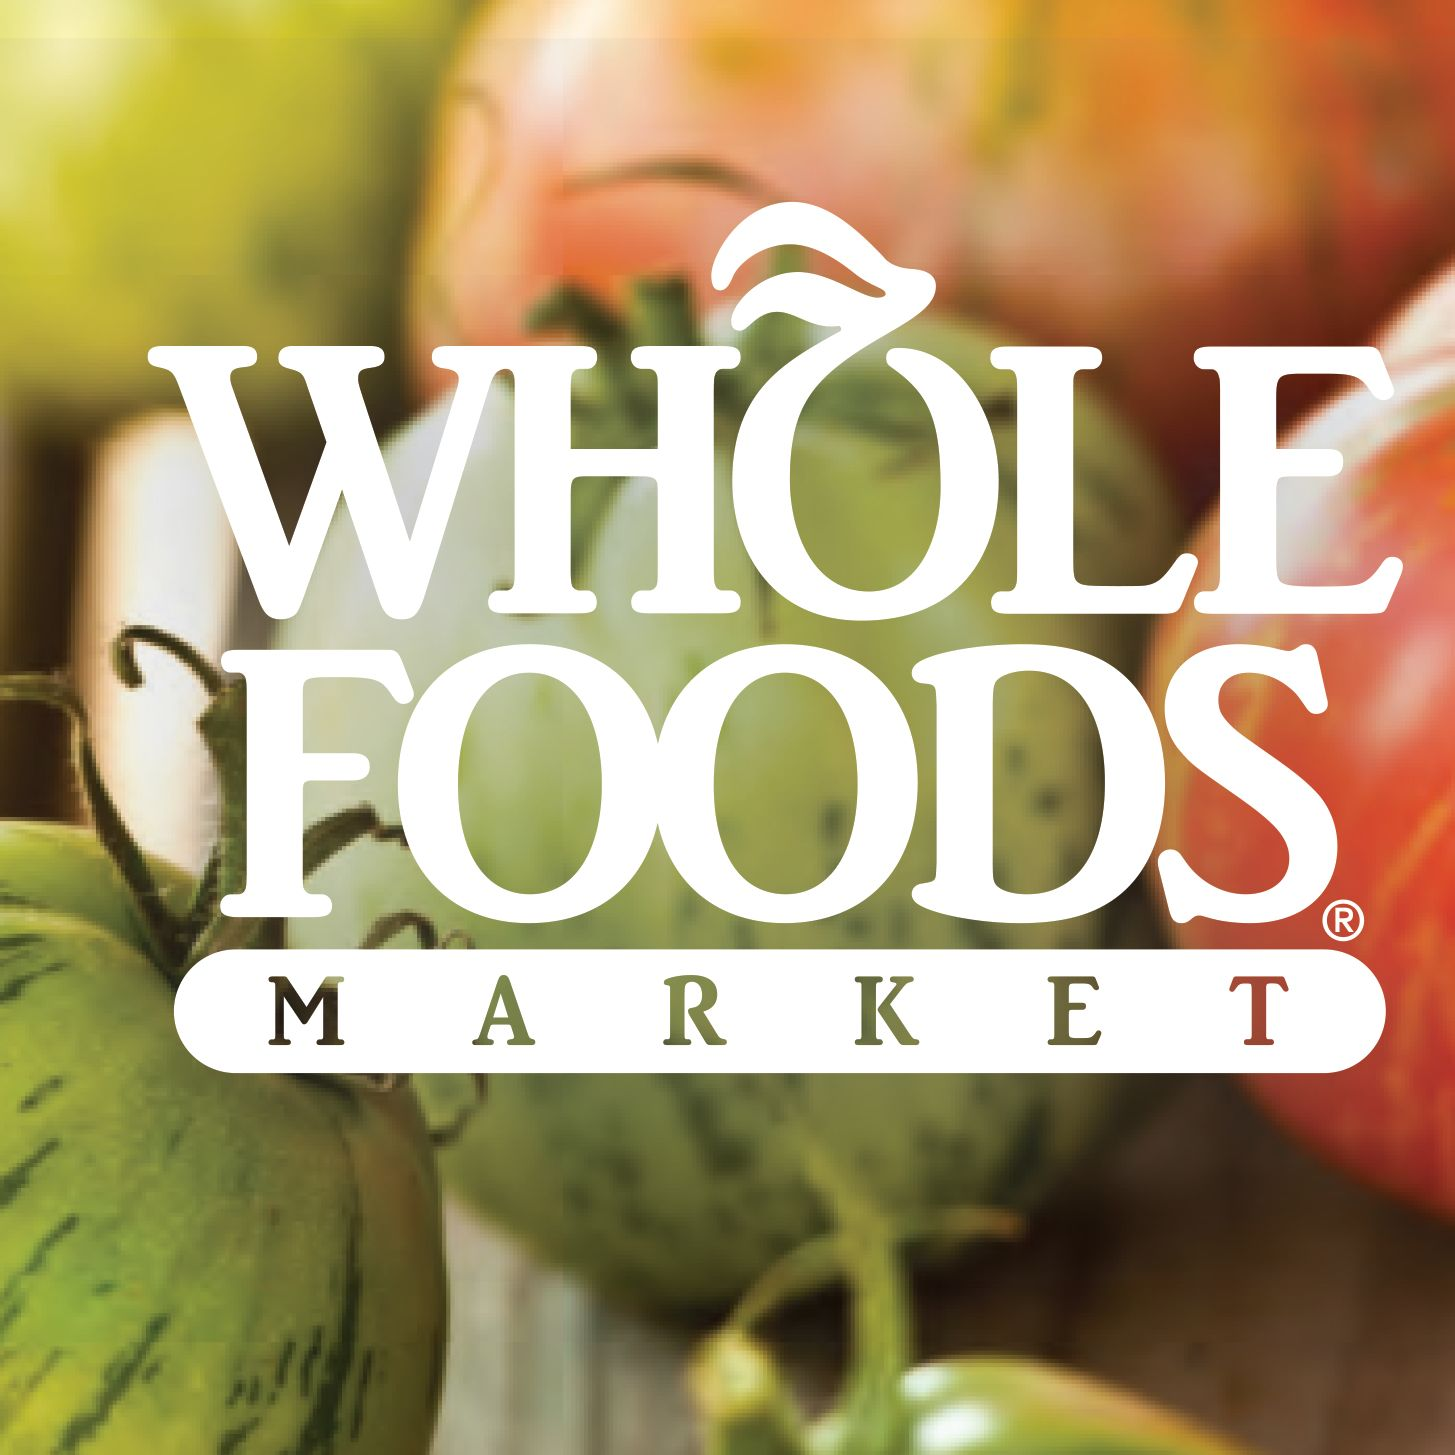 Whole foods annual report logo bwu0wc